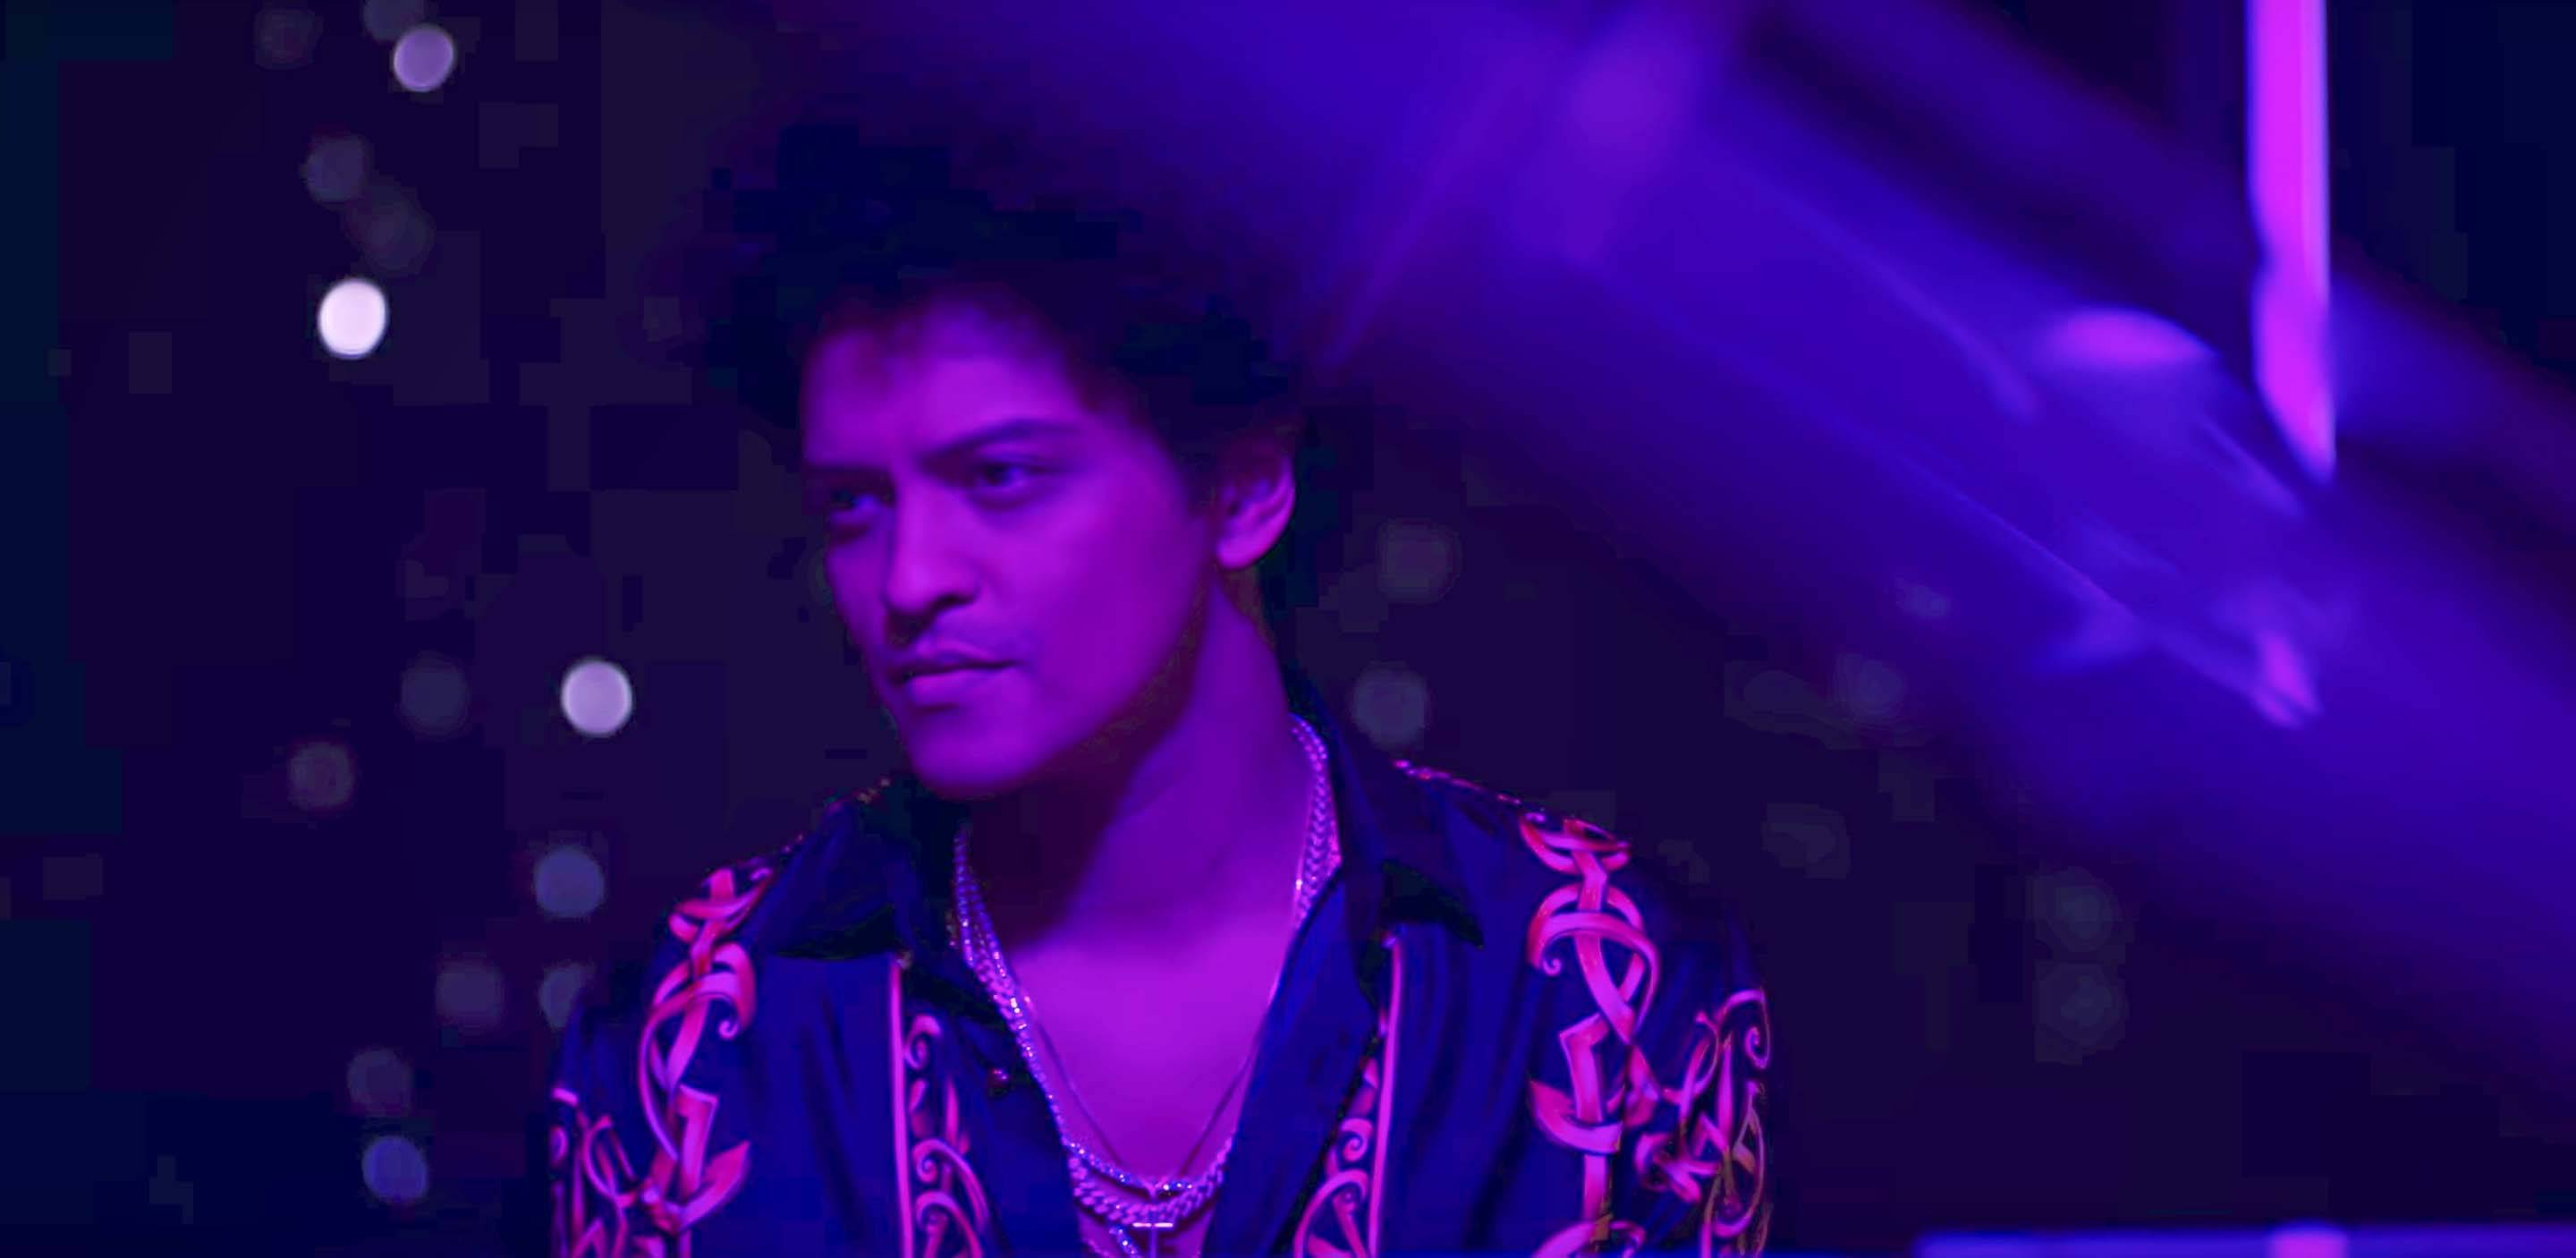 VERSACE ON THE FLOOR - WRITTEN BY: CHRISTOPHER STEVEN BROWN, JAMES EDWARD FAUNTLEROY, BRUNO MARS, PHILIP MARTIN LAWRENCE (BRUNO MARS) ? WRITTEN BY: CHRISTOPHER STEVEN BROWN, JAMES EDWARD FAUNTLEROY, BRUNO MARS, PHILIP MARTIN LAWRENCE (BRUNO MARS)(Photo: Atlantic Records via YouTube)